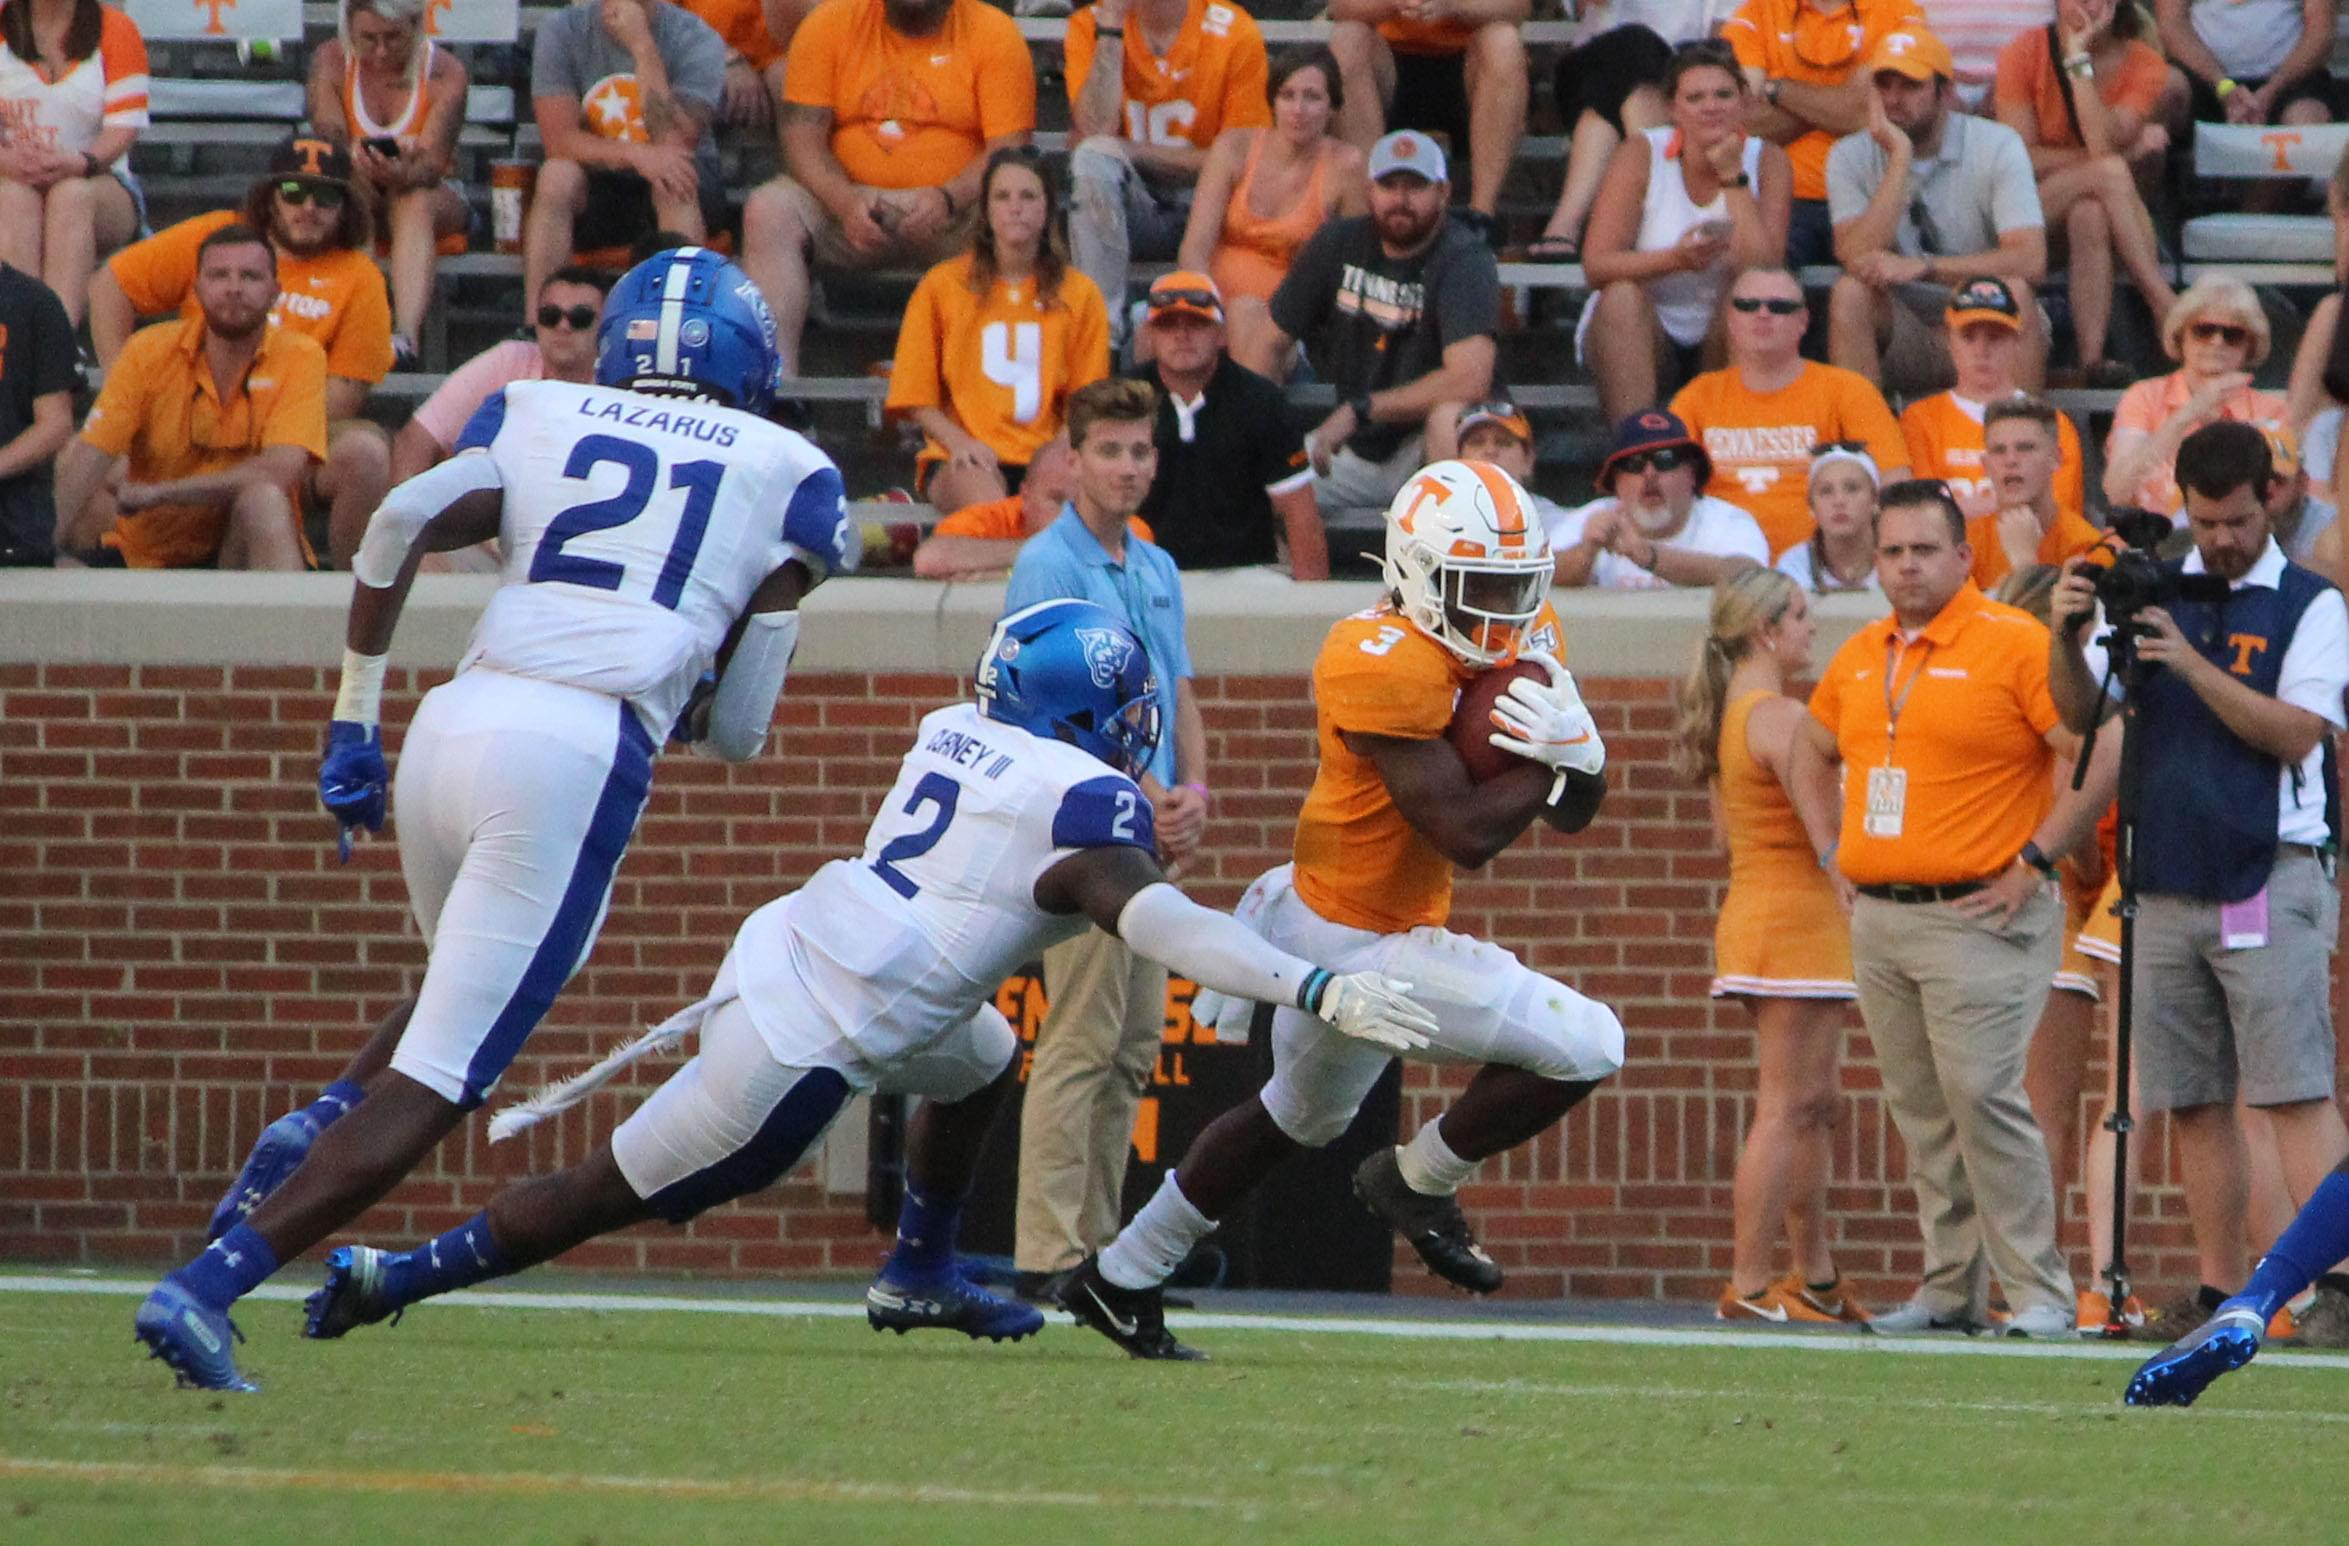 Silverberg: What to move forward with after Vols loss to Georgia State